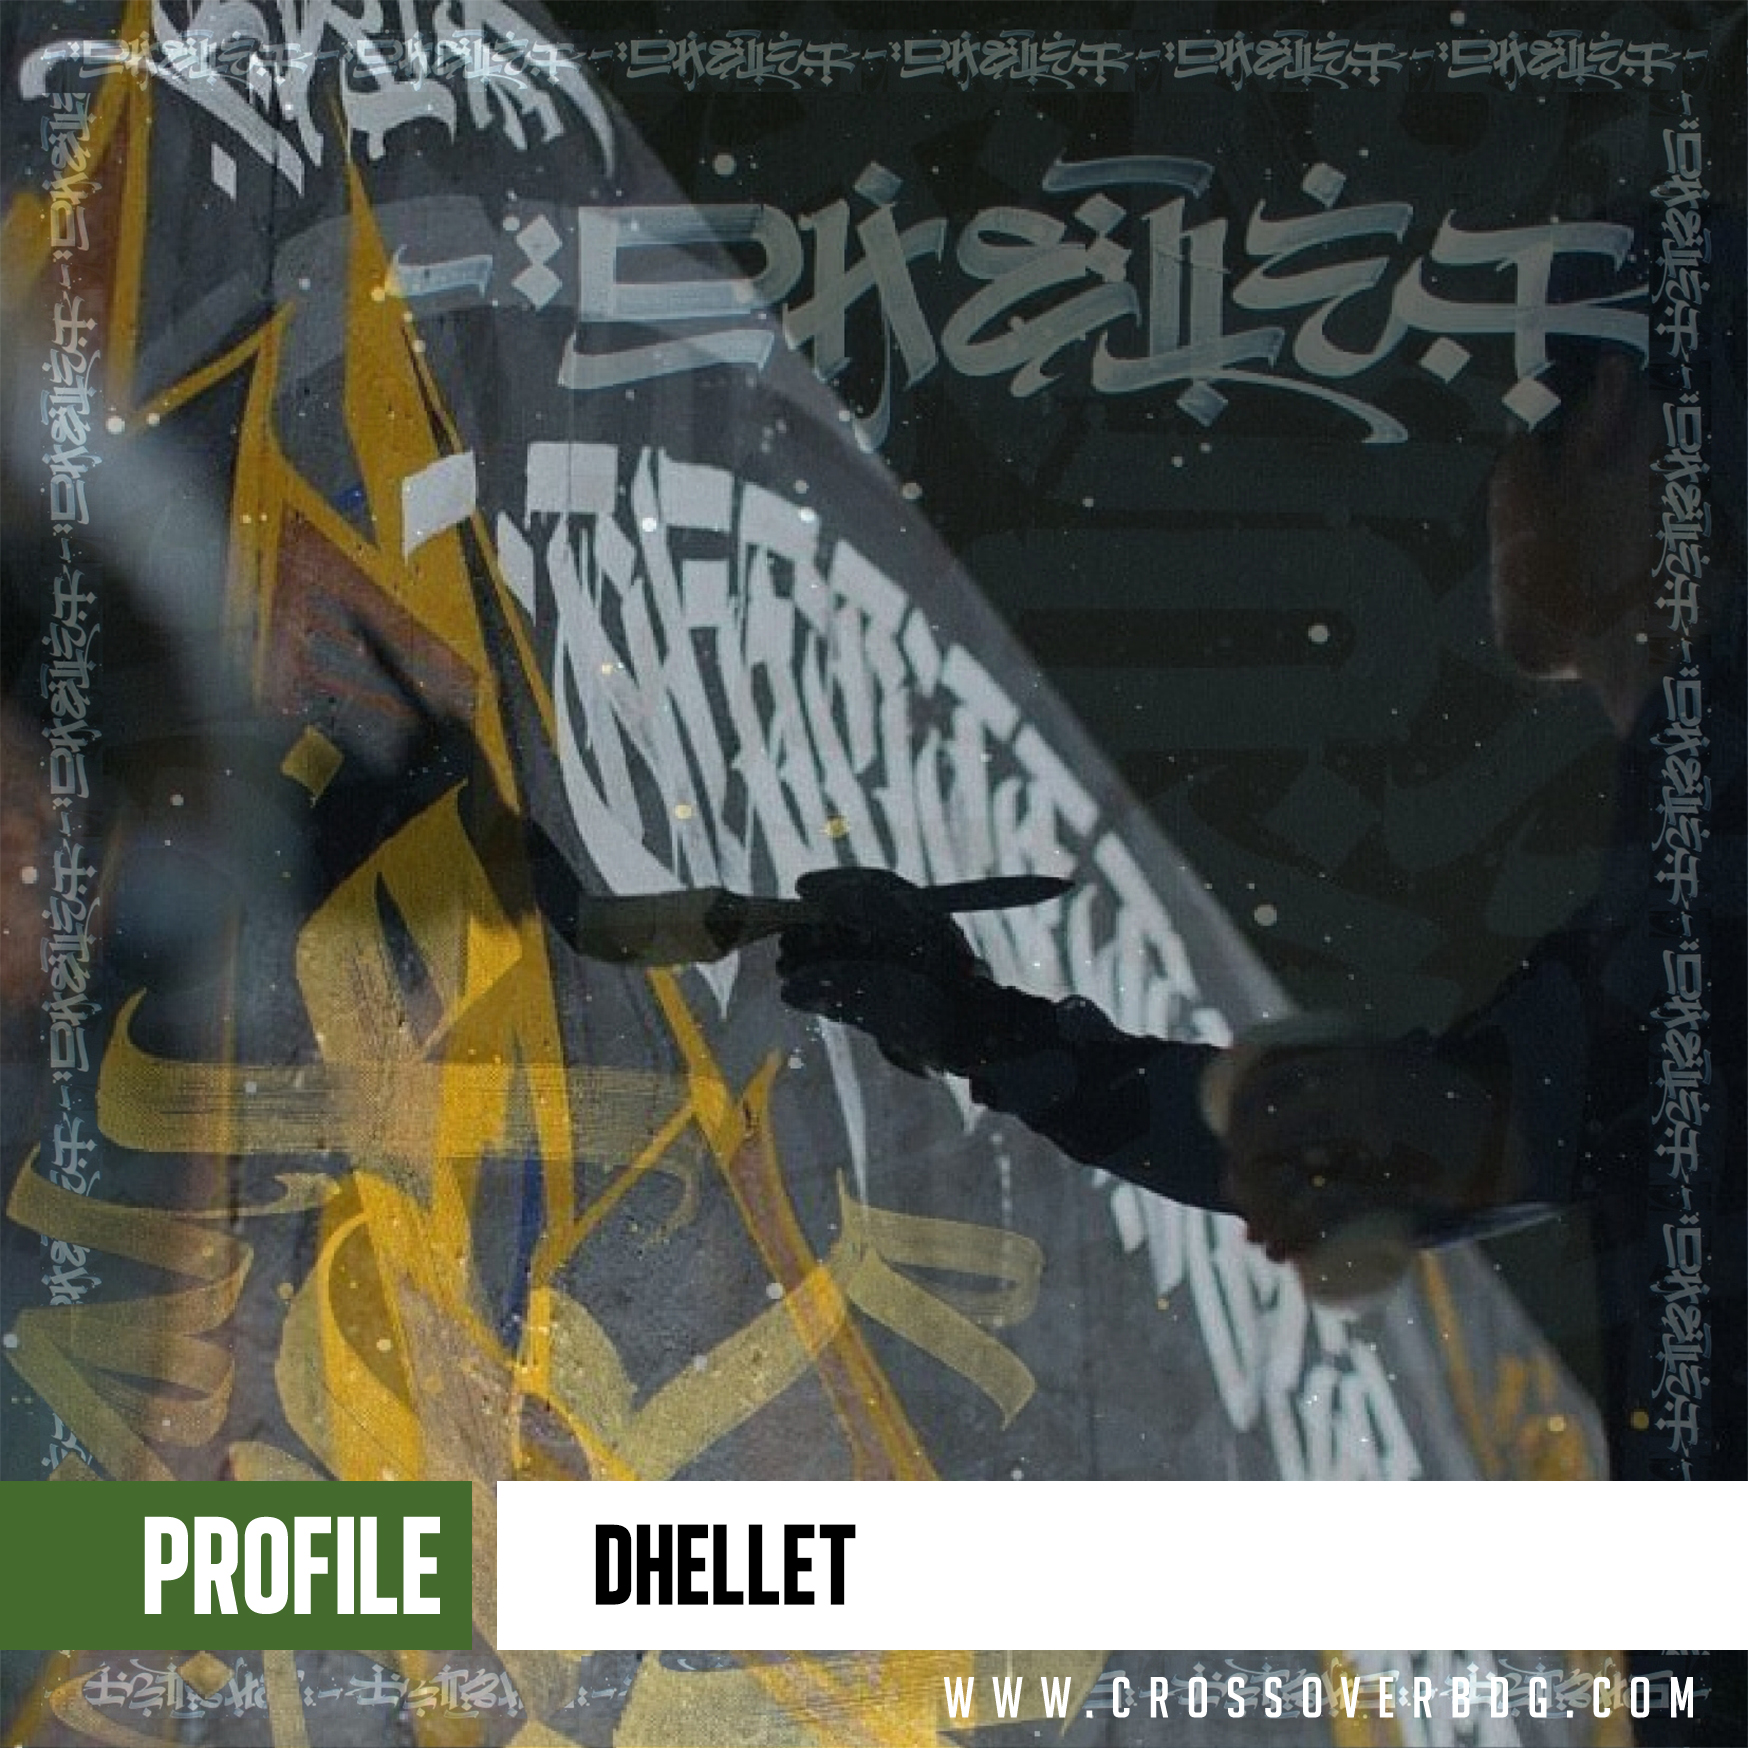 PROFILE : Dhellet  and Caligram image